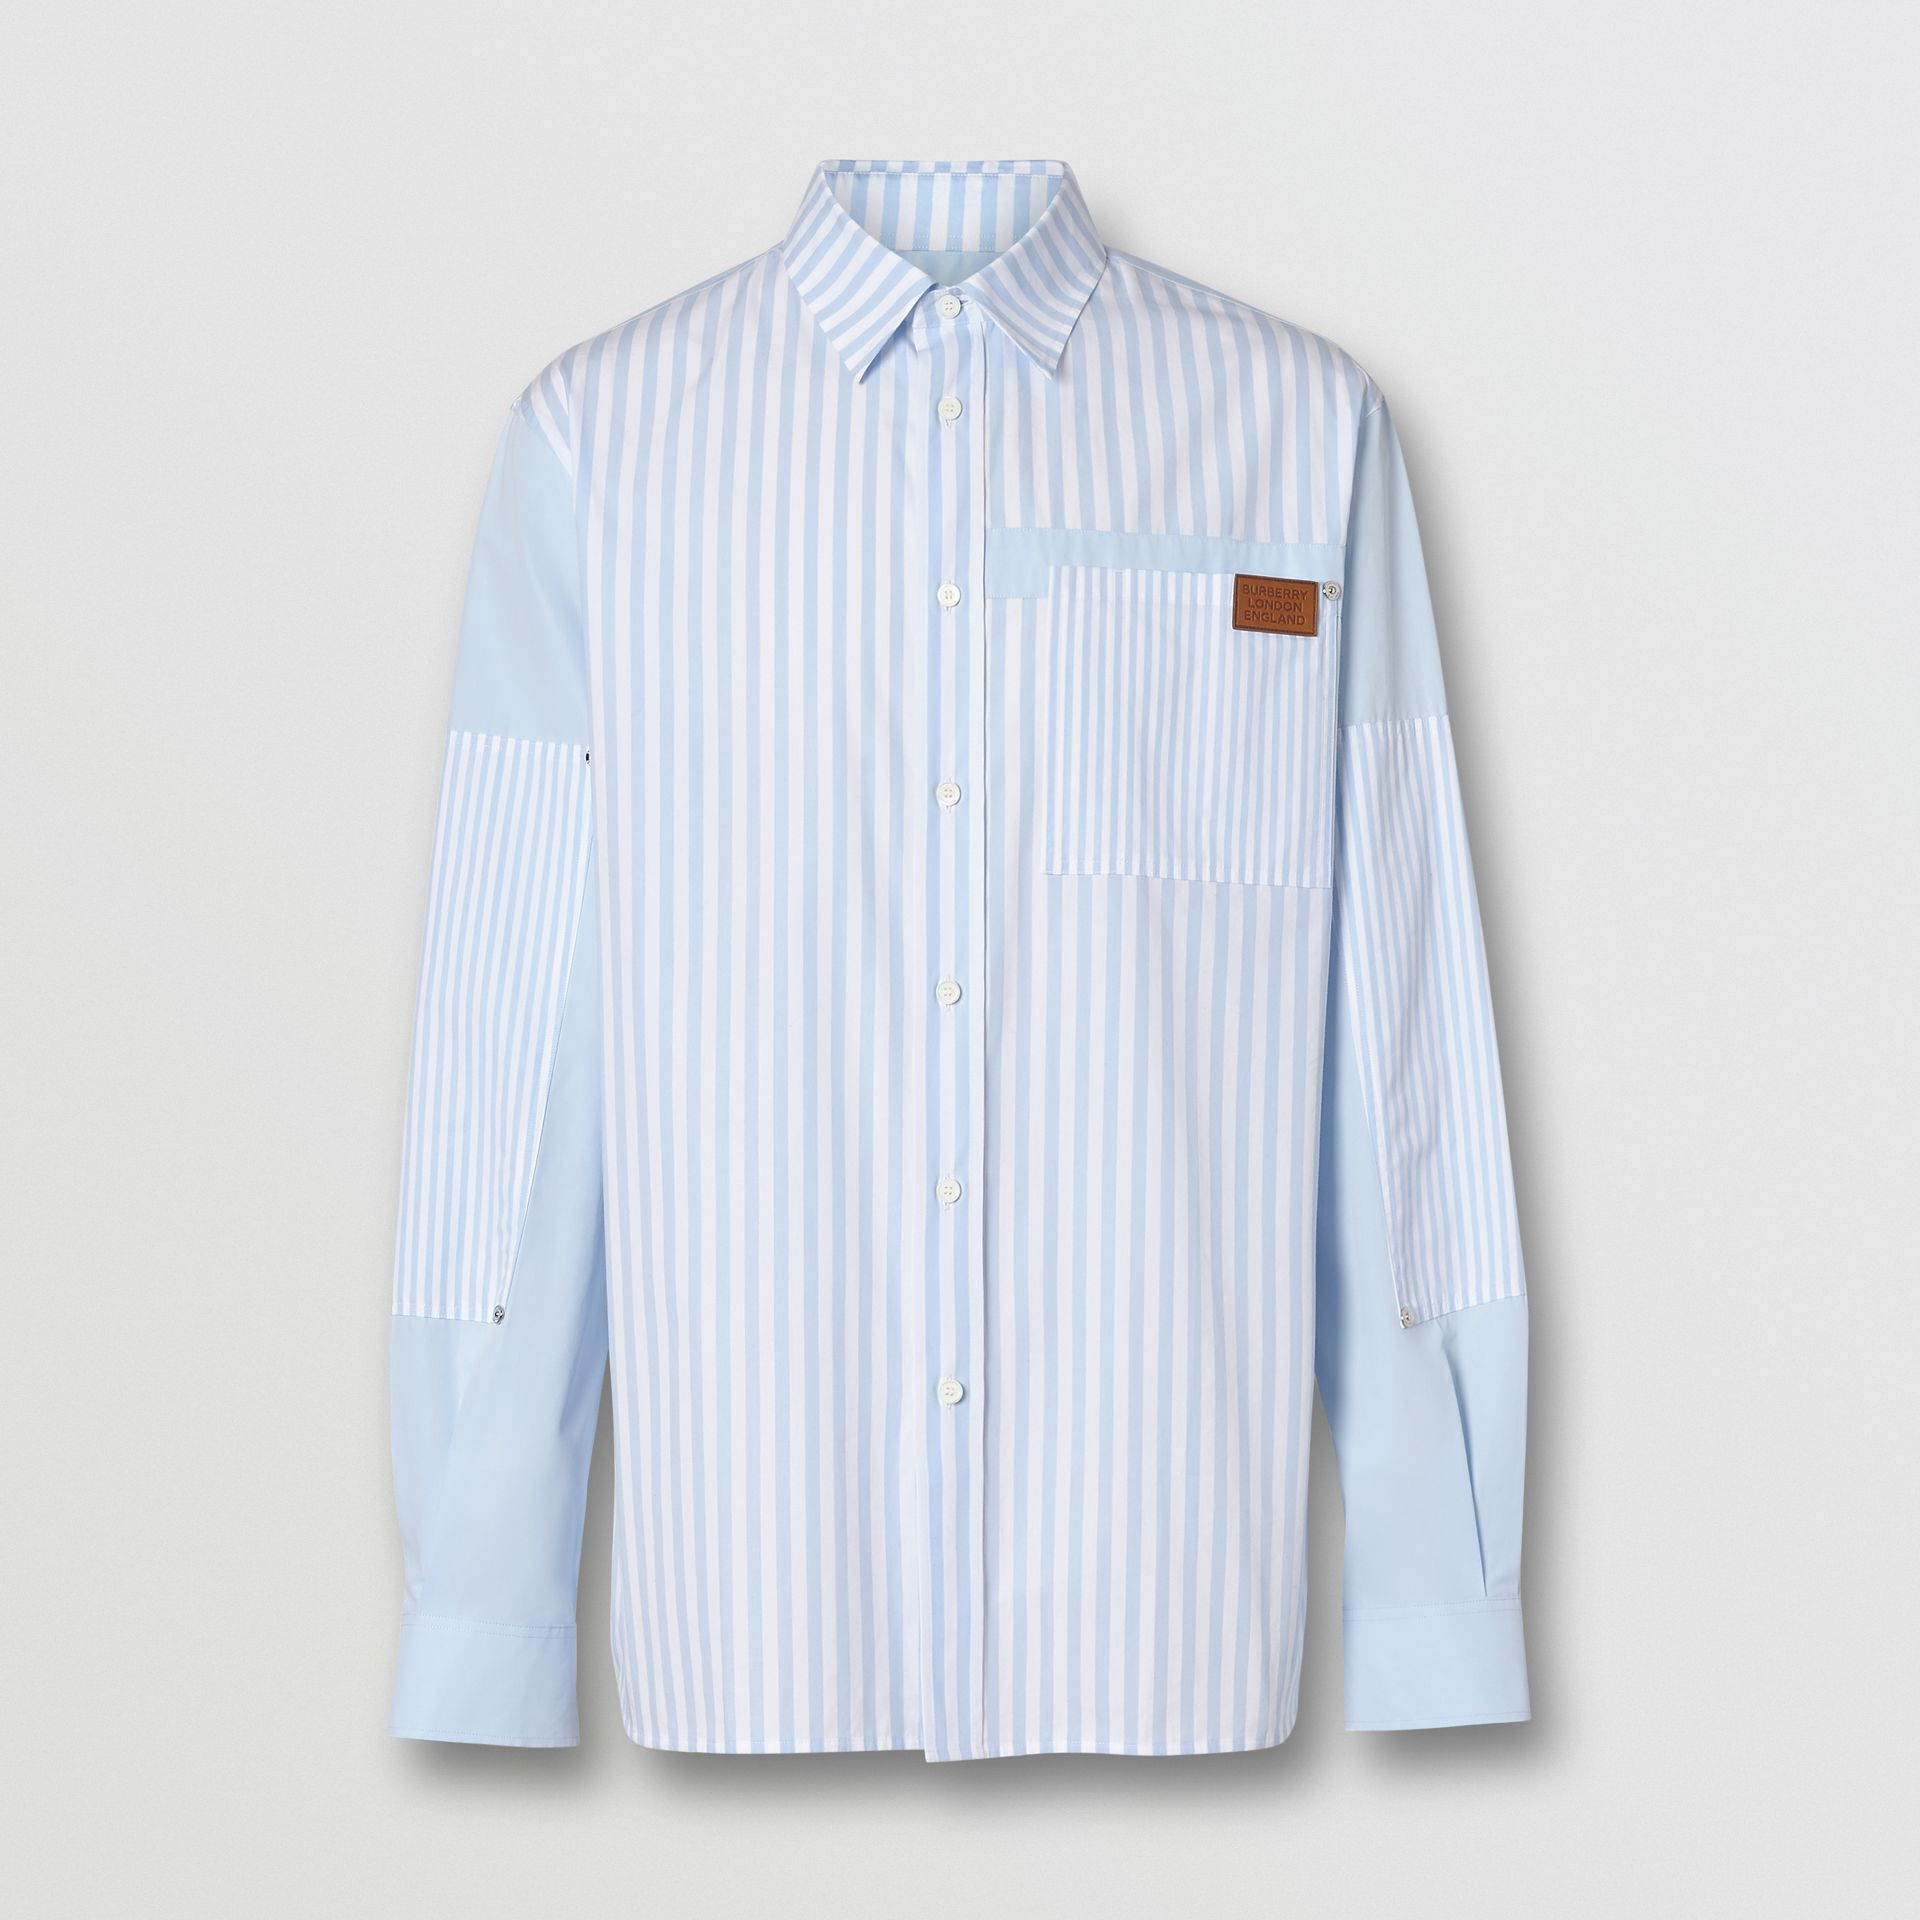 Logo Detail Patchwork Striped Cotton Shirt in Pale Blue Stripe - Men | Burberry - gallery image 3